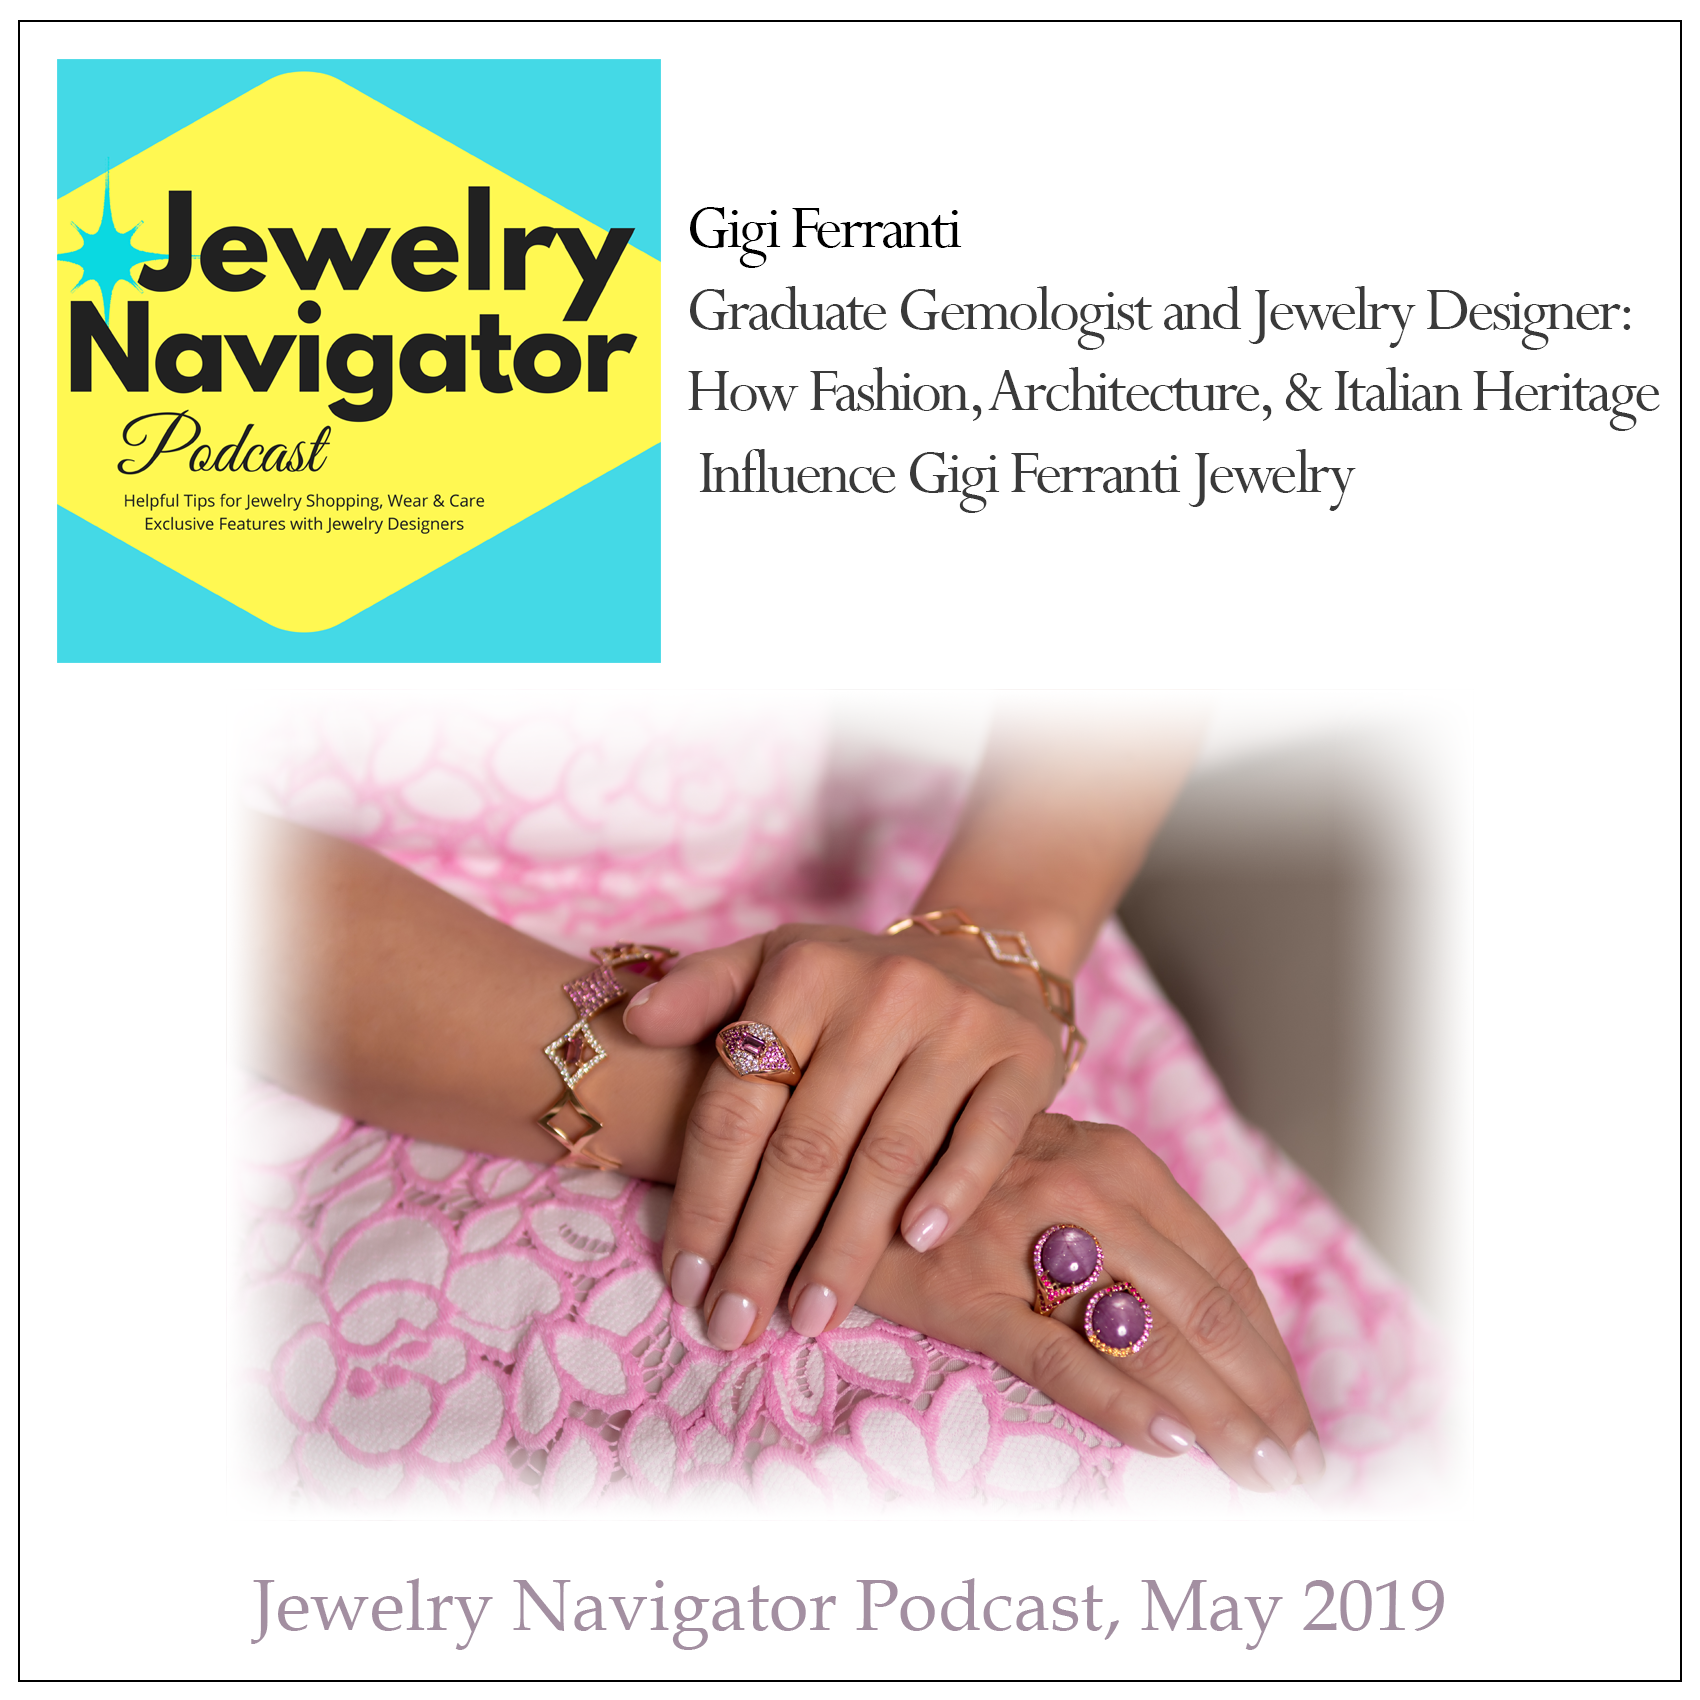 jewelry-navigator-podcast-may-2019.png